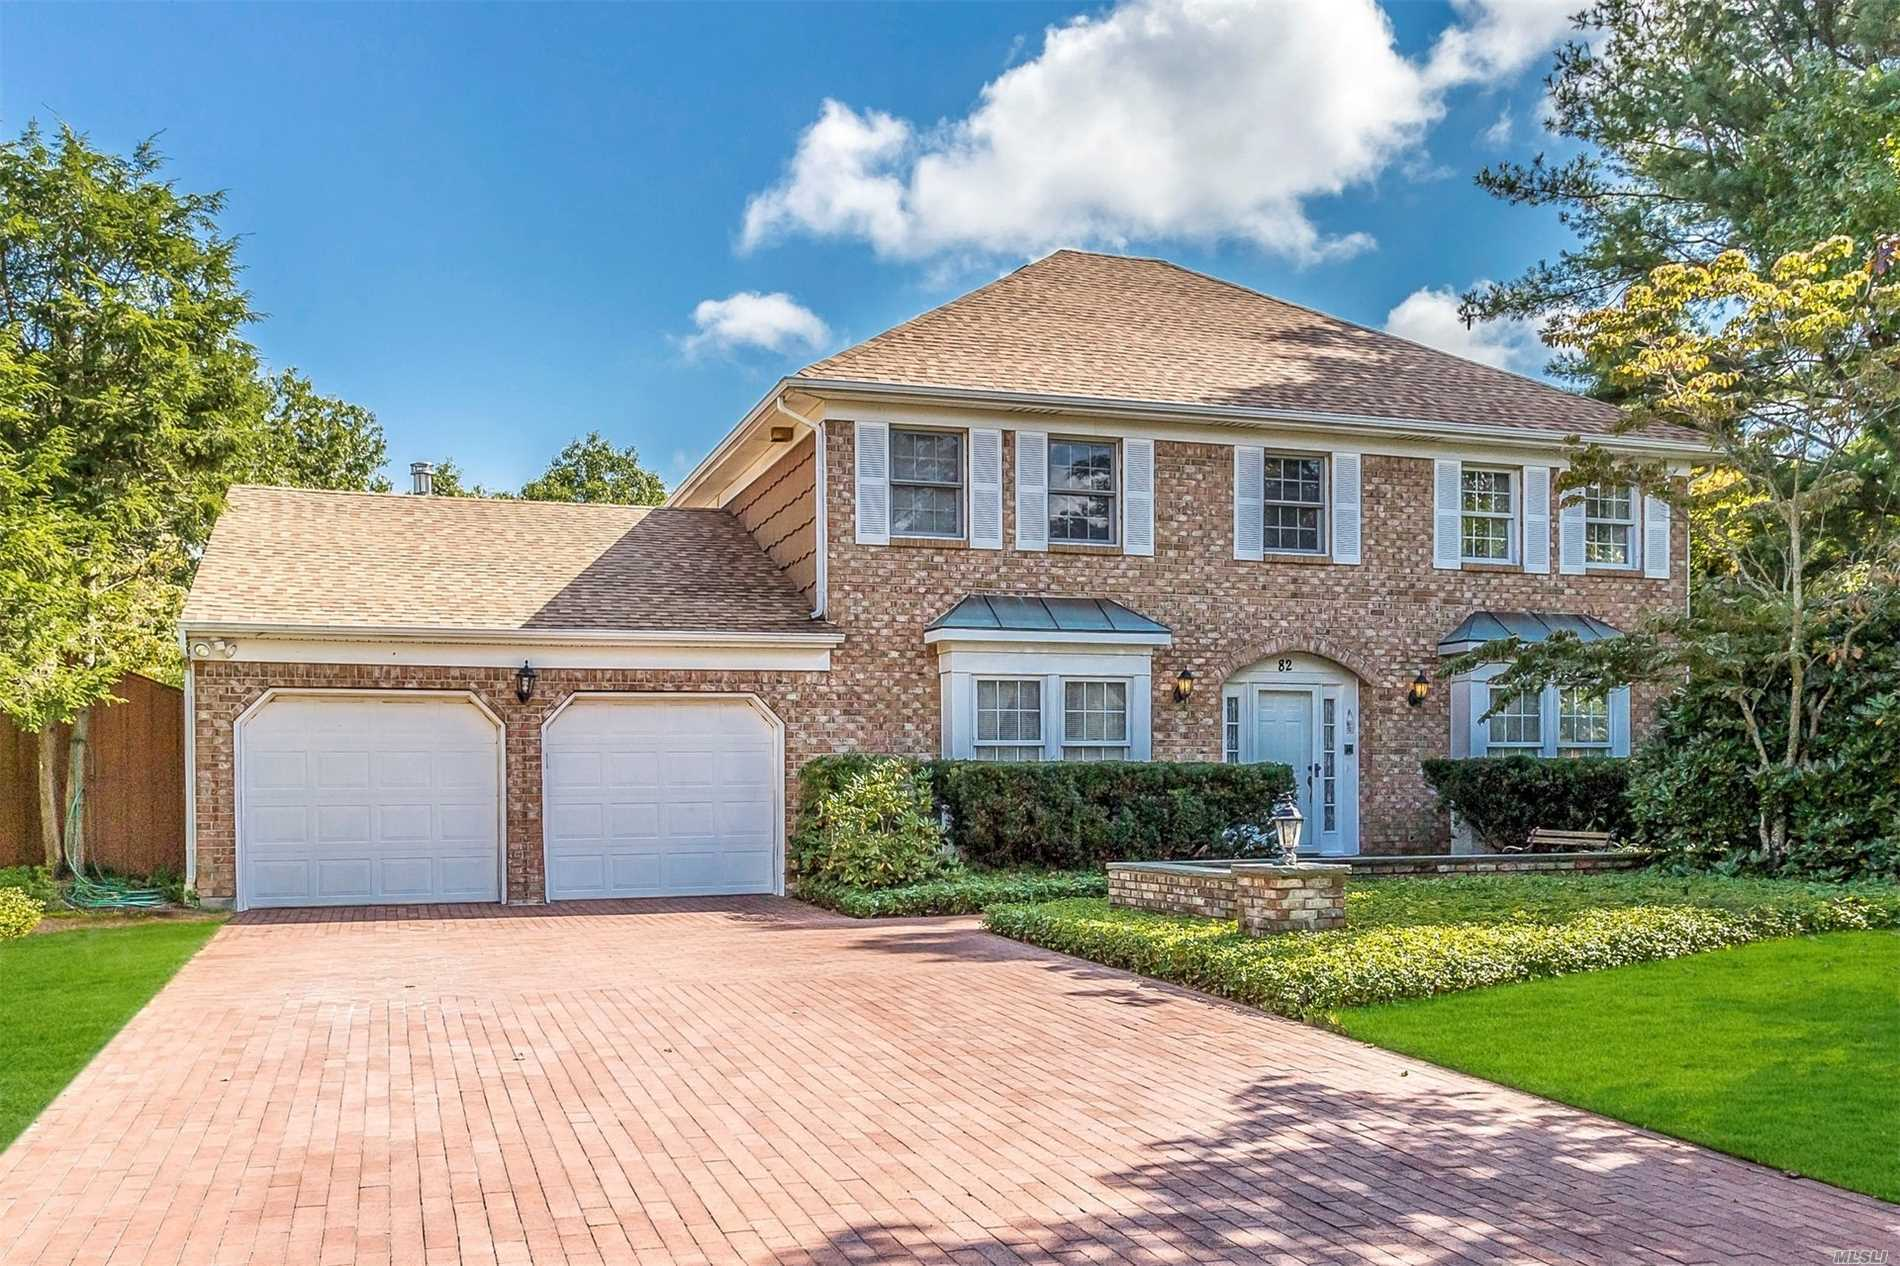 82 Annandale Dr - Commack, New York